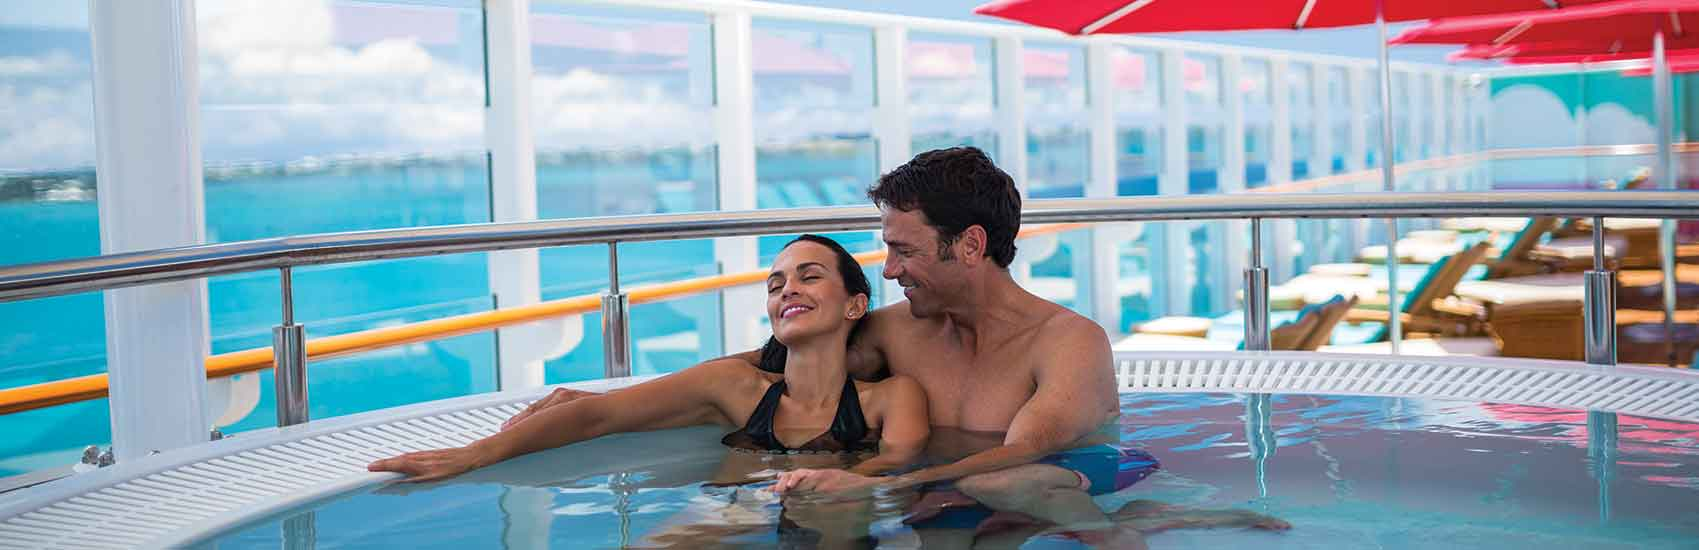 Exclusive Virtuoso Offer with Norwegian Cruise Line 2